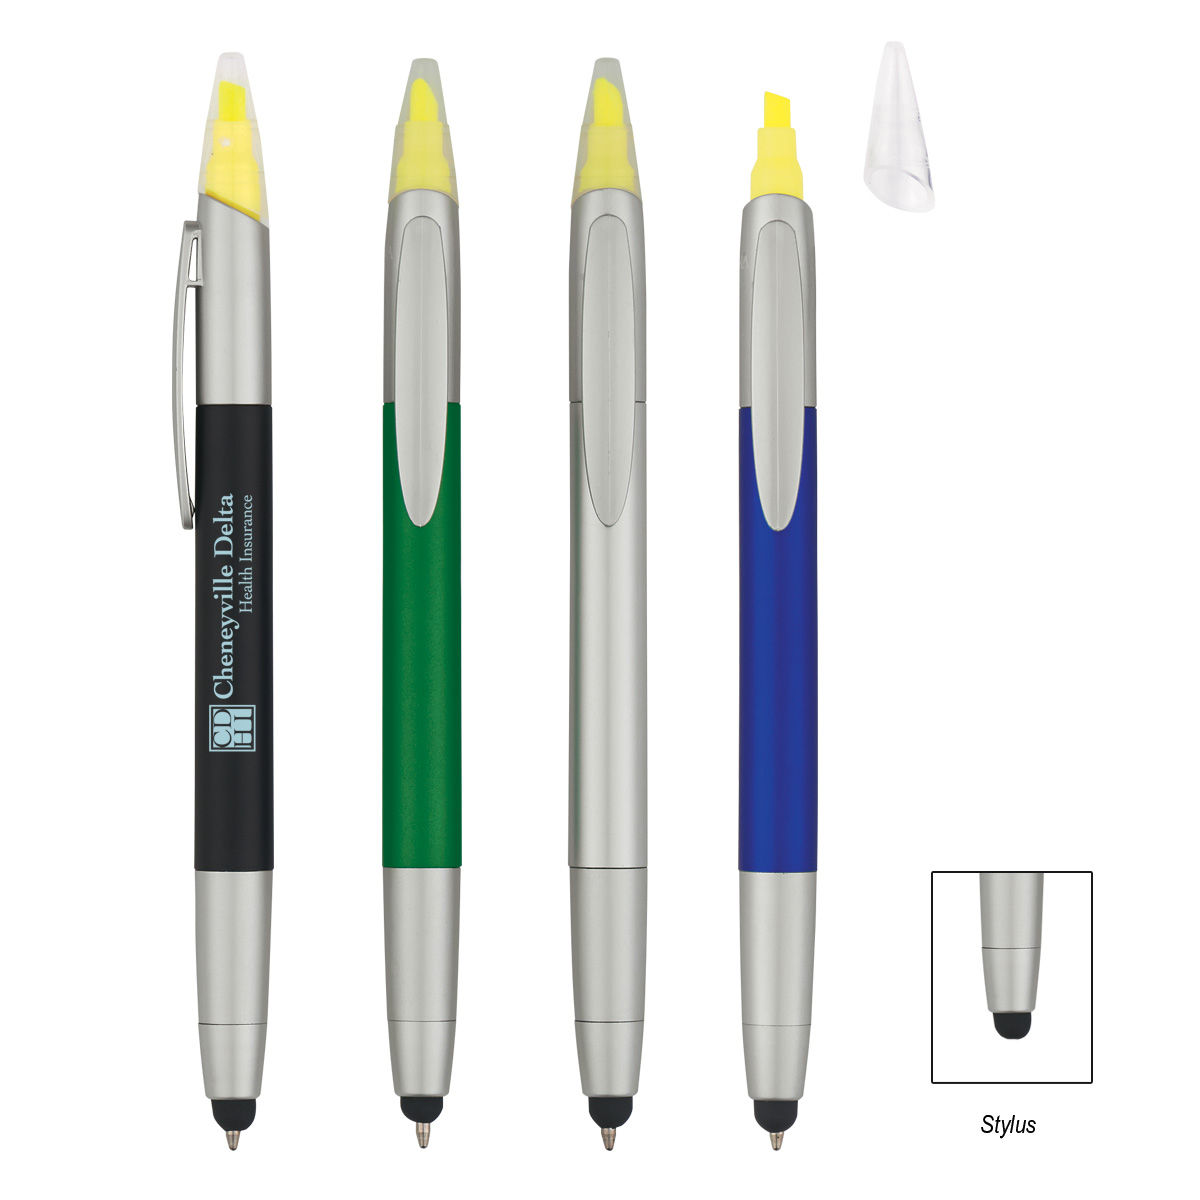 #CM 992 - 3-In-1 Pen With Highlighter and Stylus